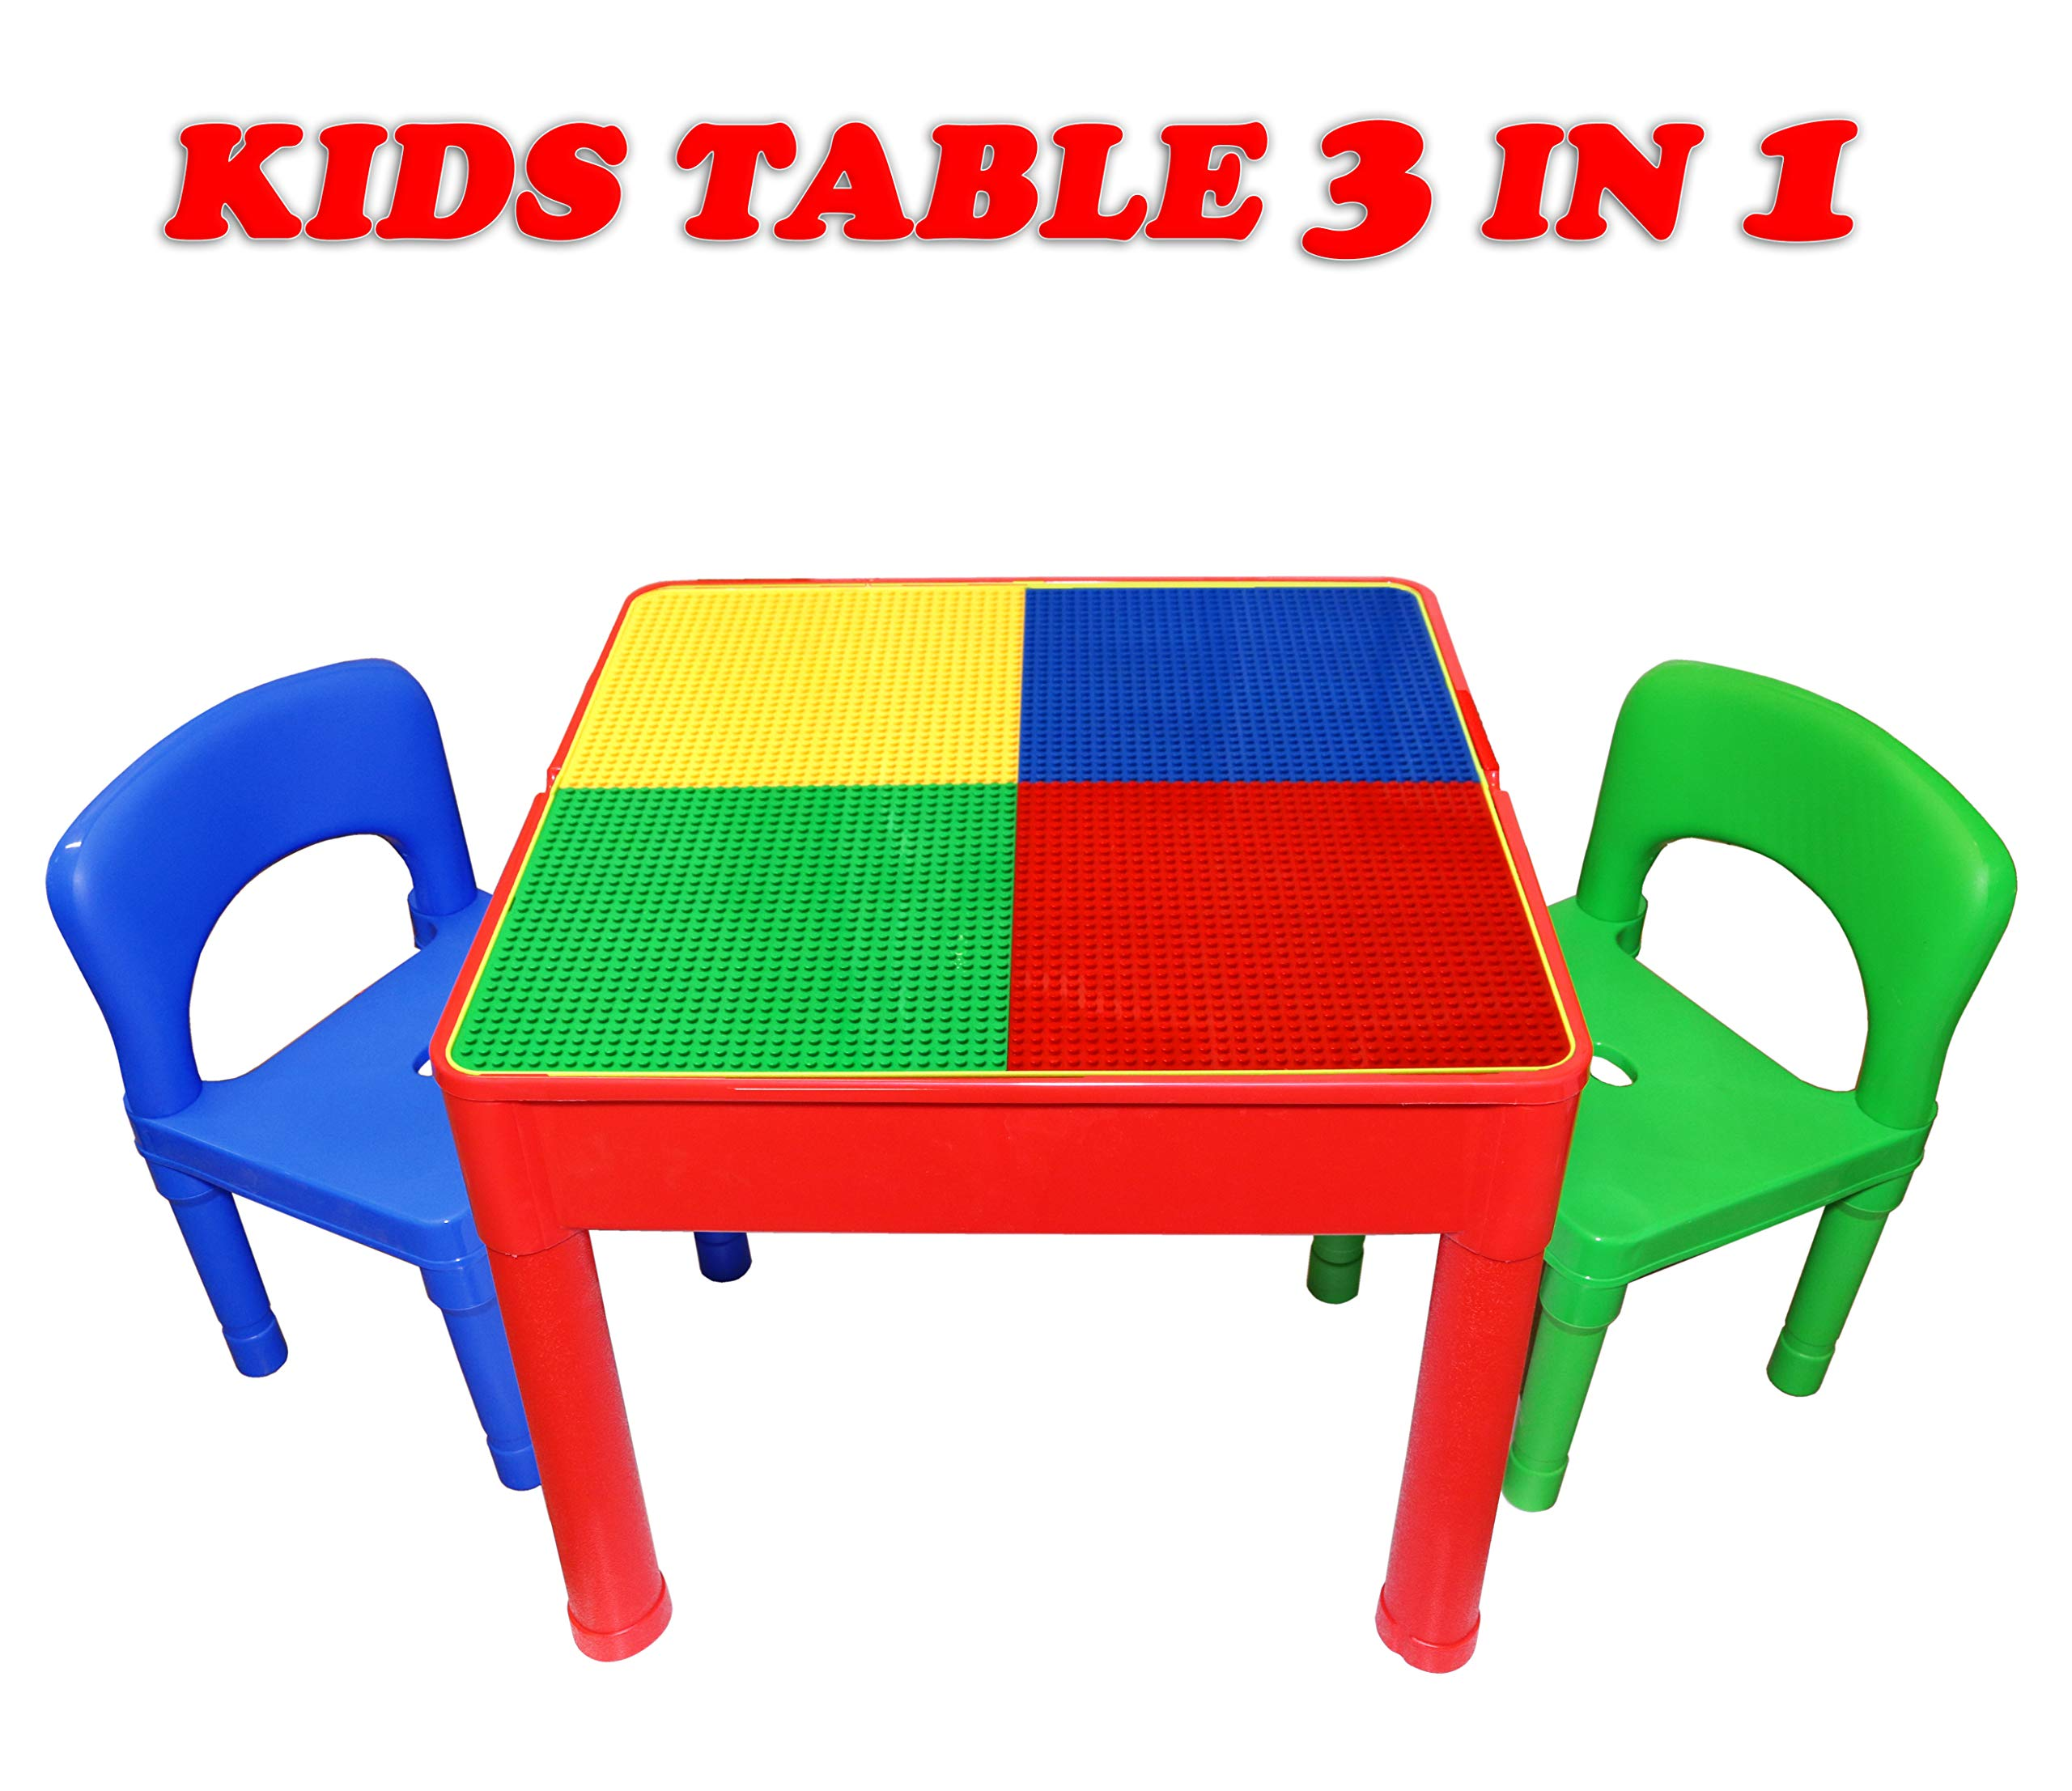 Kids Activity Table and Chair Set - 3 in 1 Kids Table Use As A Water Table, Building Block Table, Play and Arts and Crafts Table, with Storage Space, for Kids, Toddlers - Includes Table and 2 Chairs by Smart Novelty